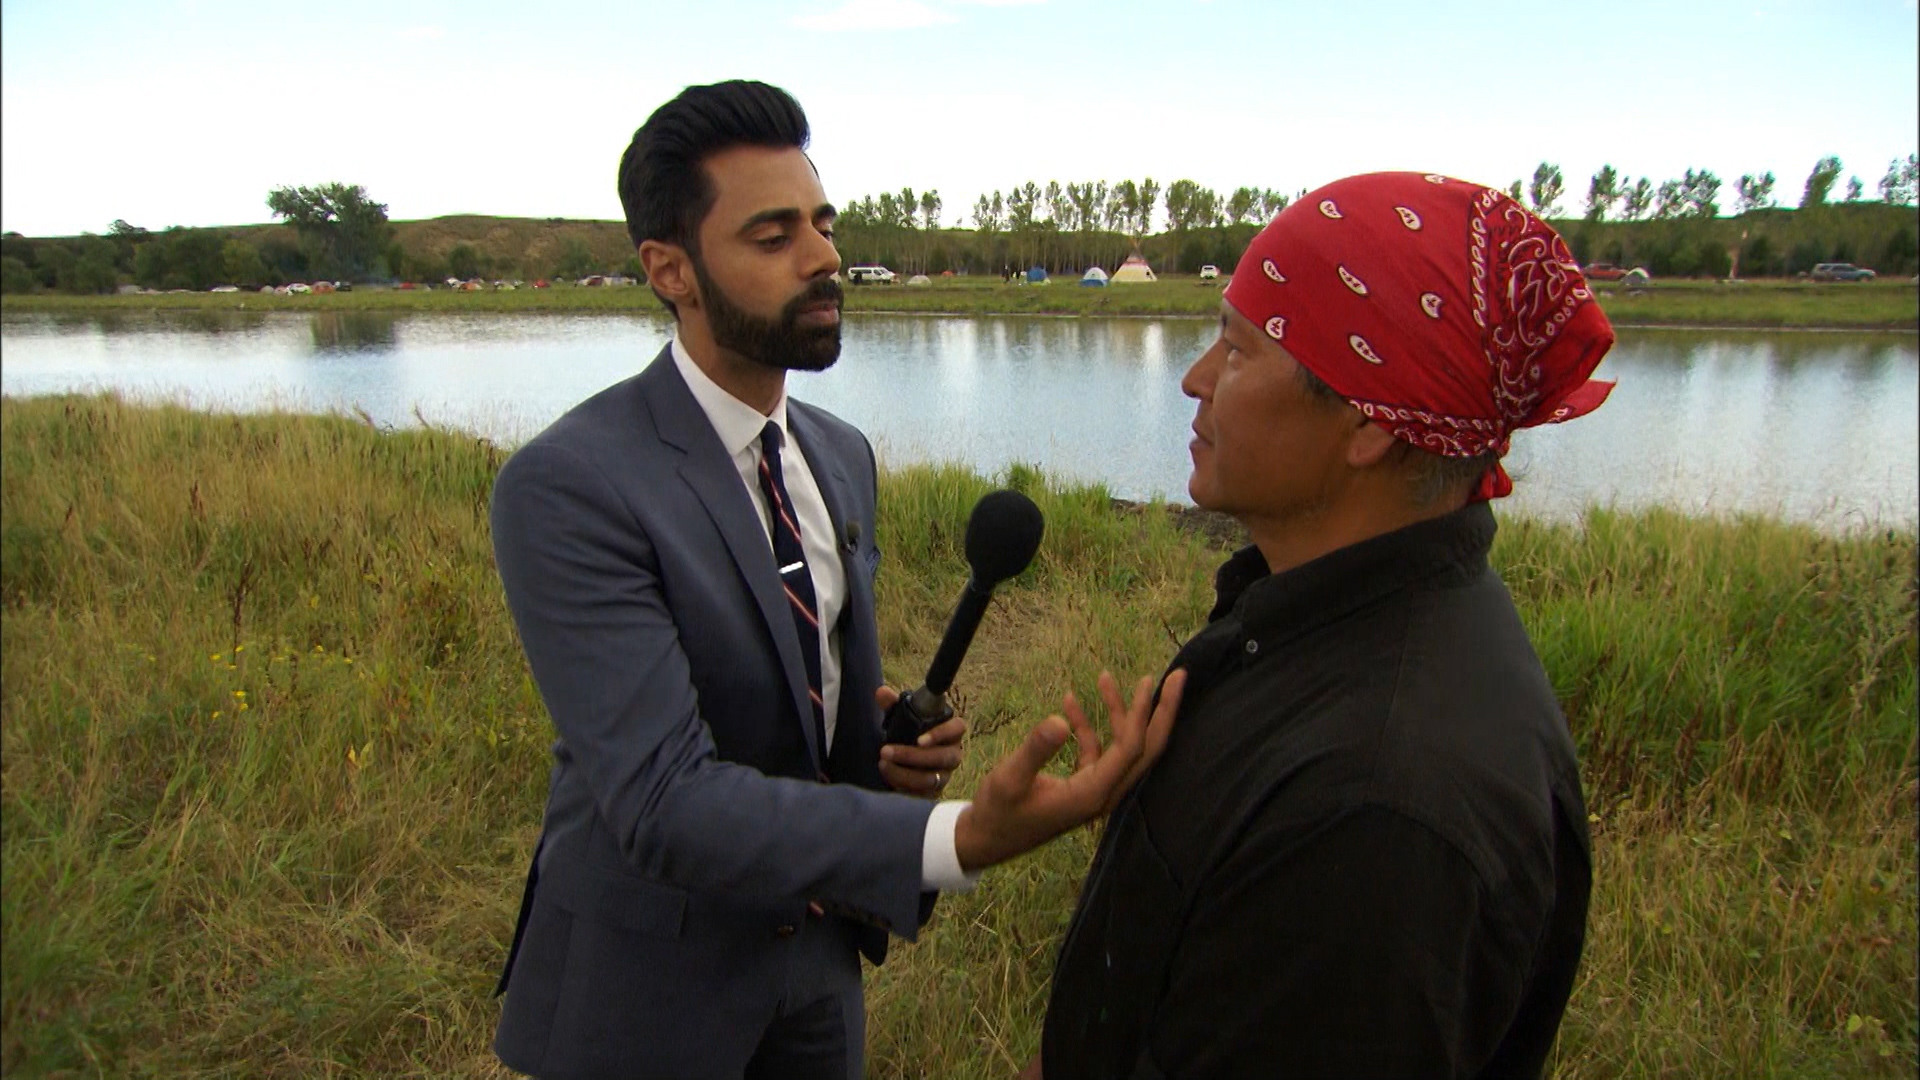 - Native Americans Fight the Dakota Access Pipeline